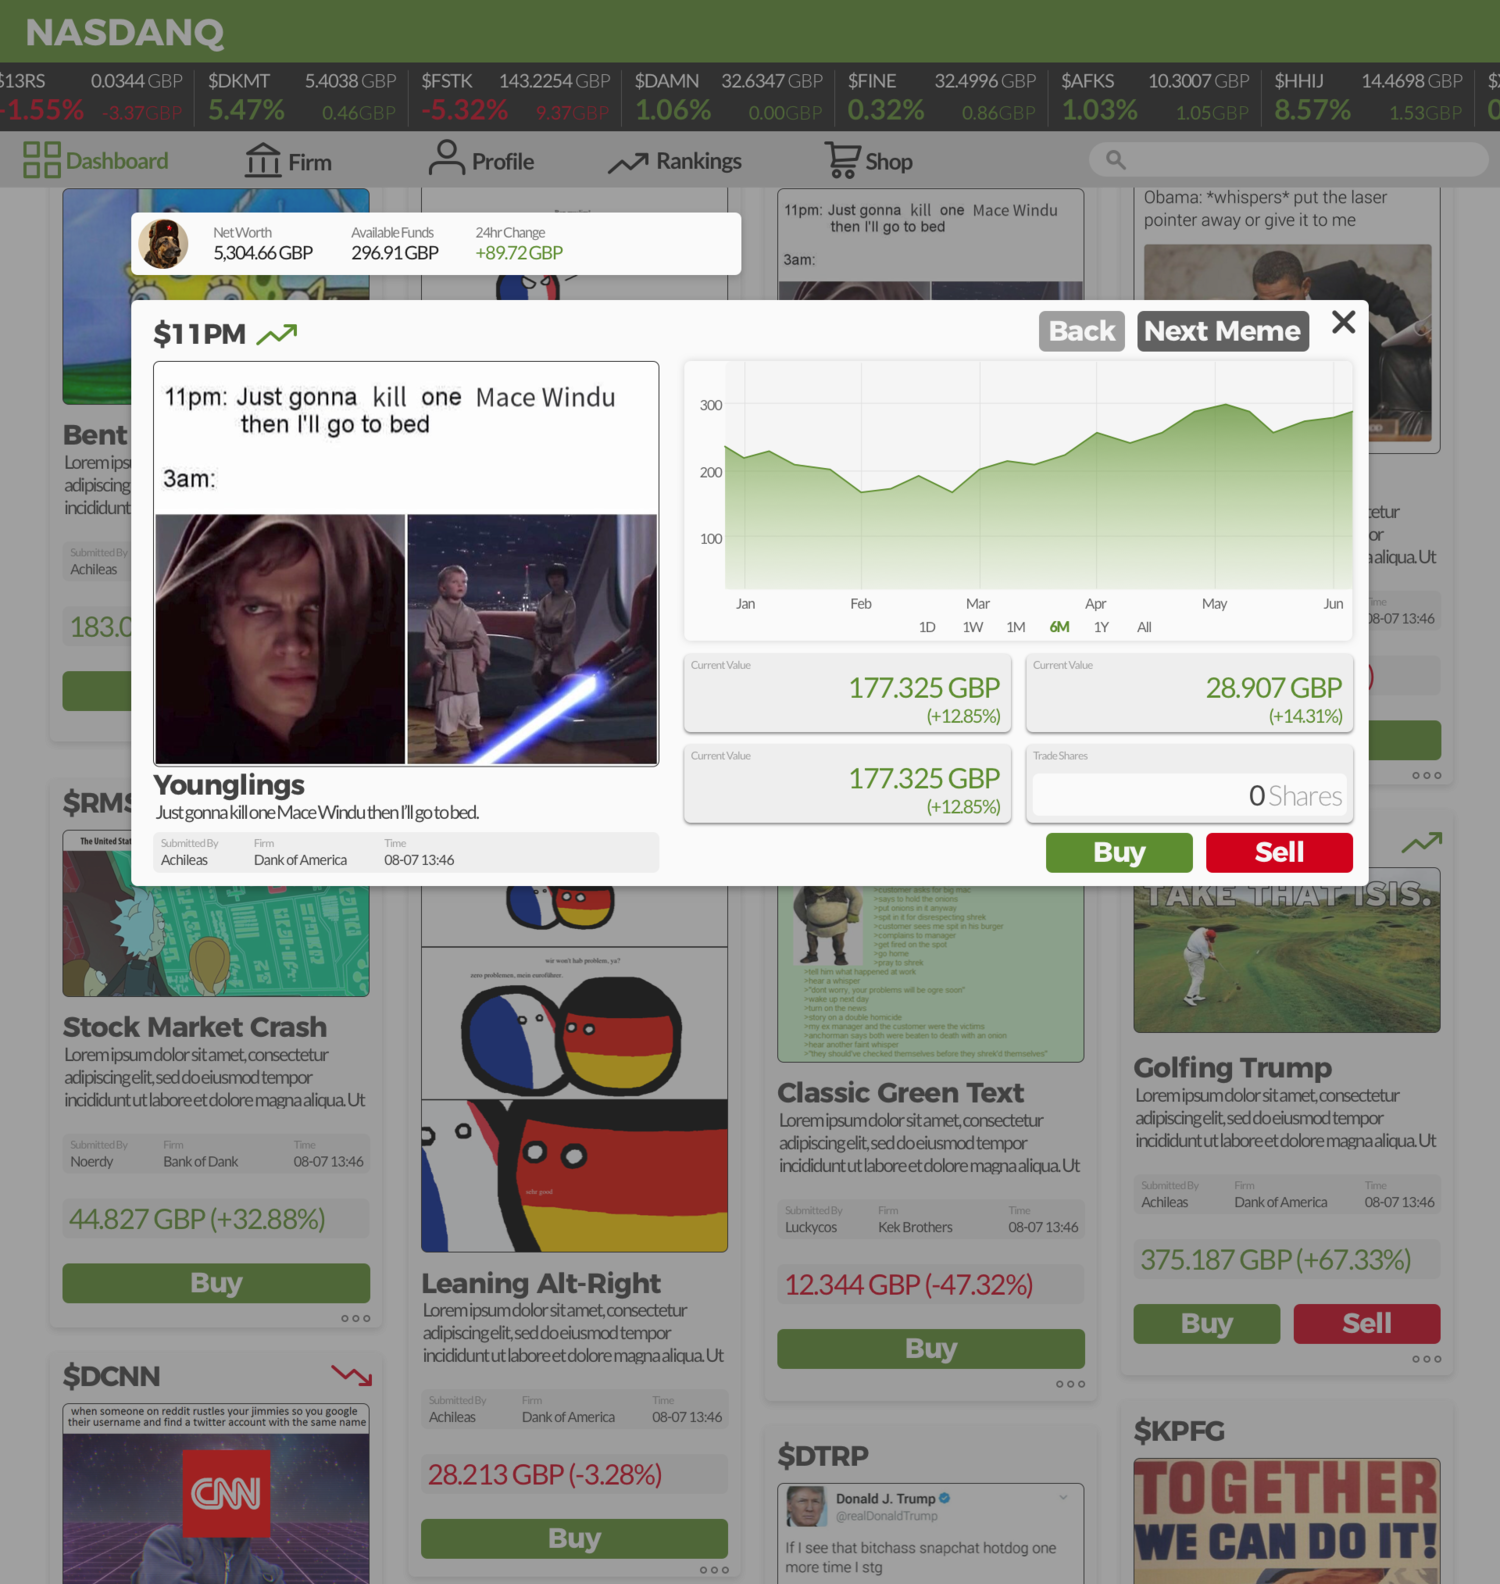 Trading   The Posts dashboard allows users to upload photos directly from their camera roll. Not including the ability to link from images from the internet is intended to increase original content by making reposting more difficult.